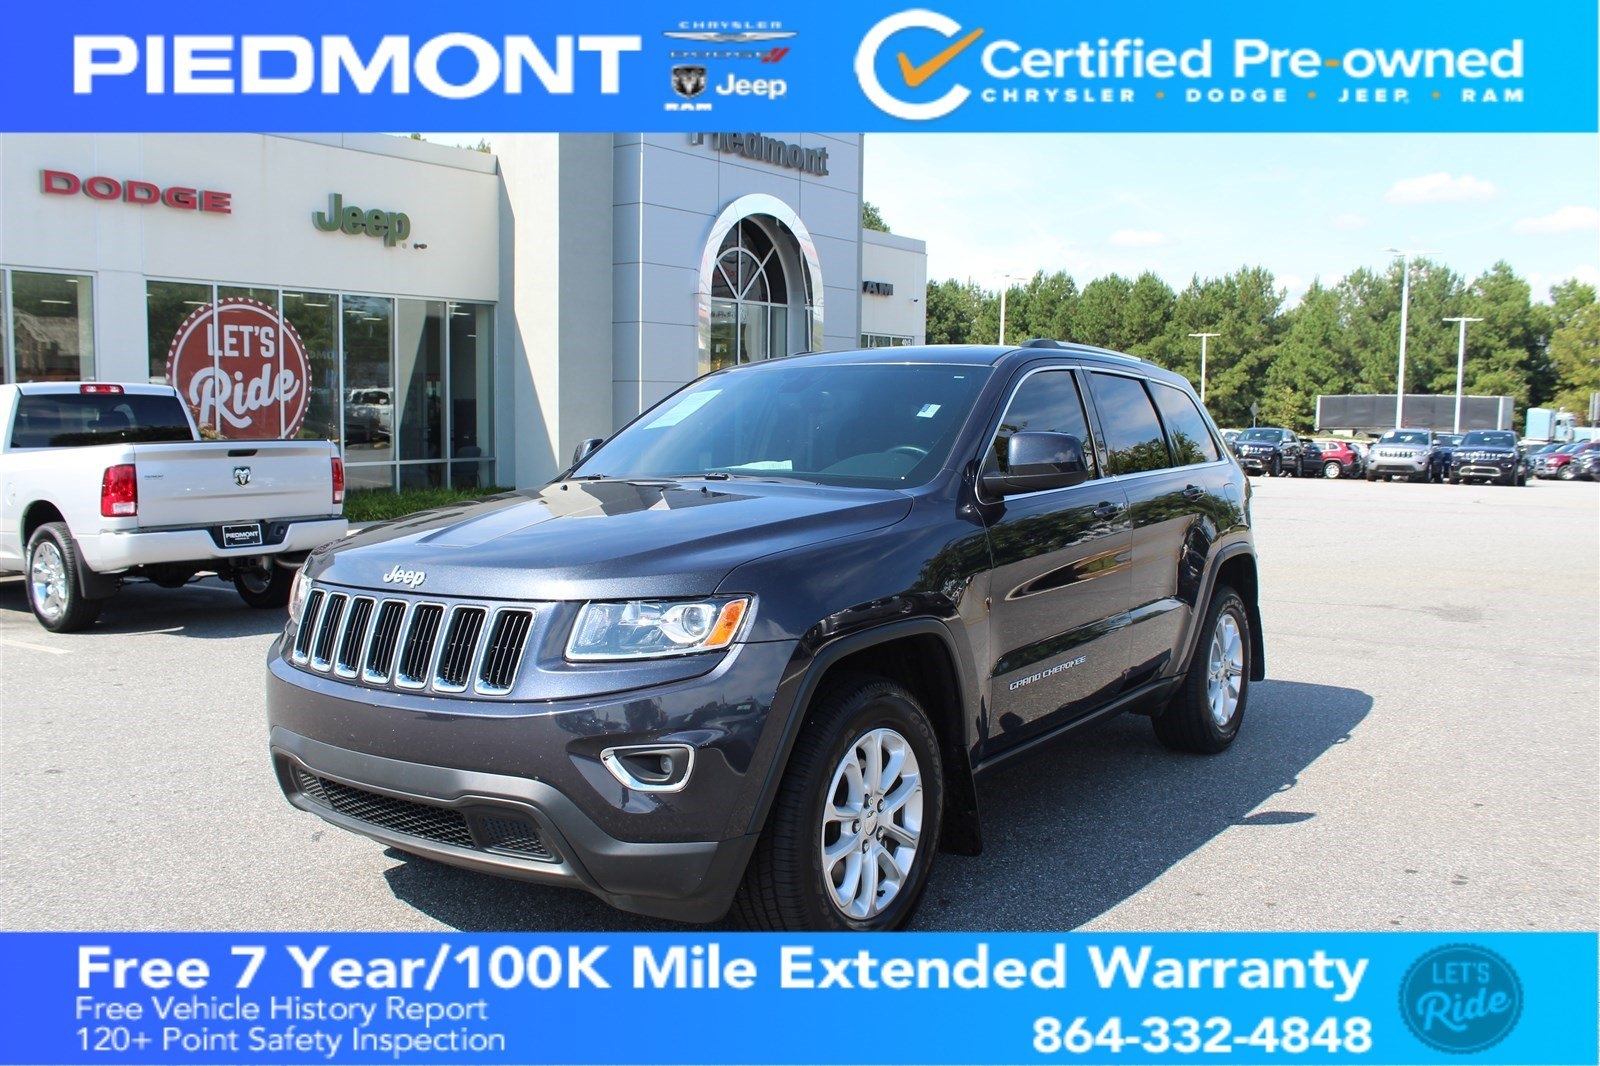 Certified Pre Owned 2016 Jeep Grand Cherokee RWD 4dr Laredo